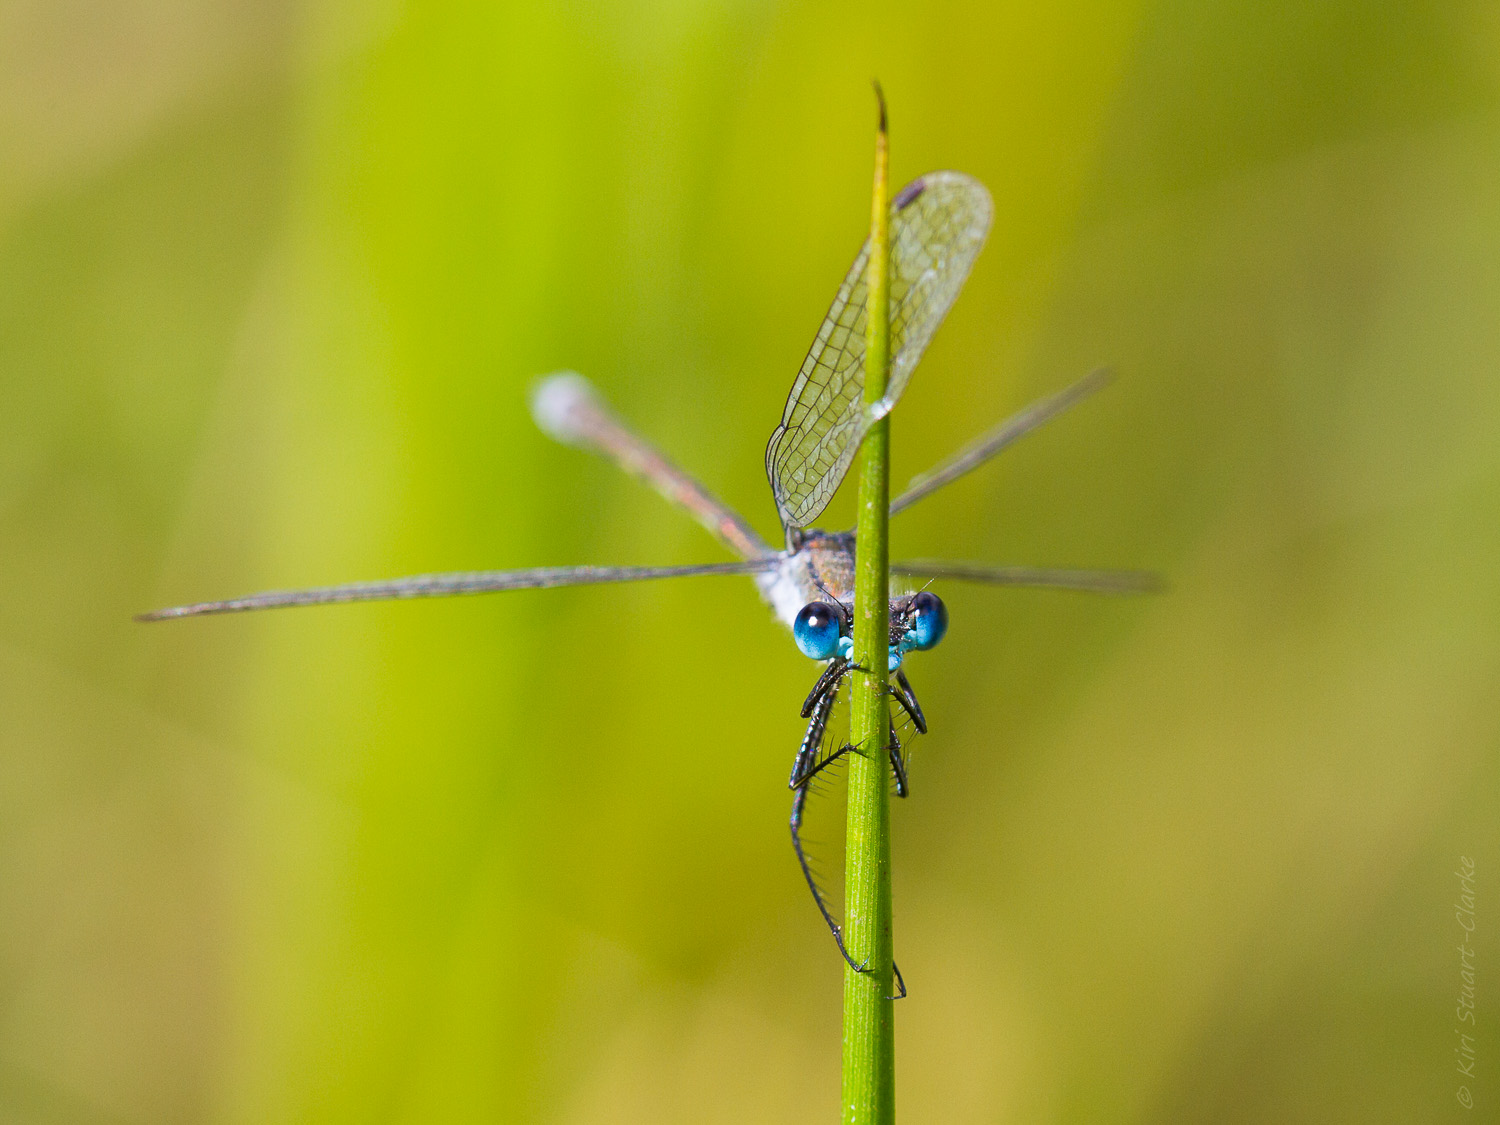 Emerald damselfly on reedtip